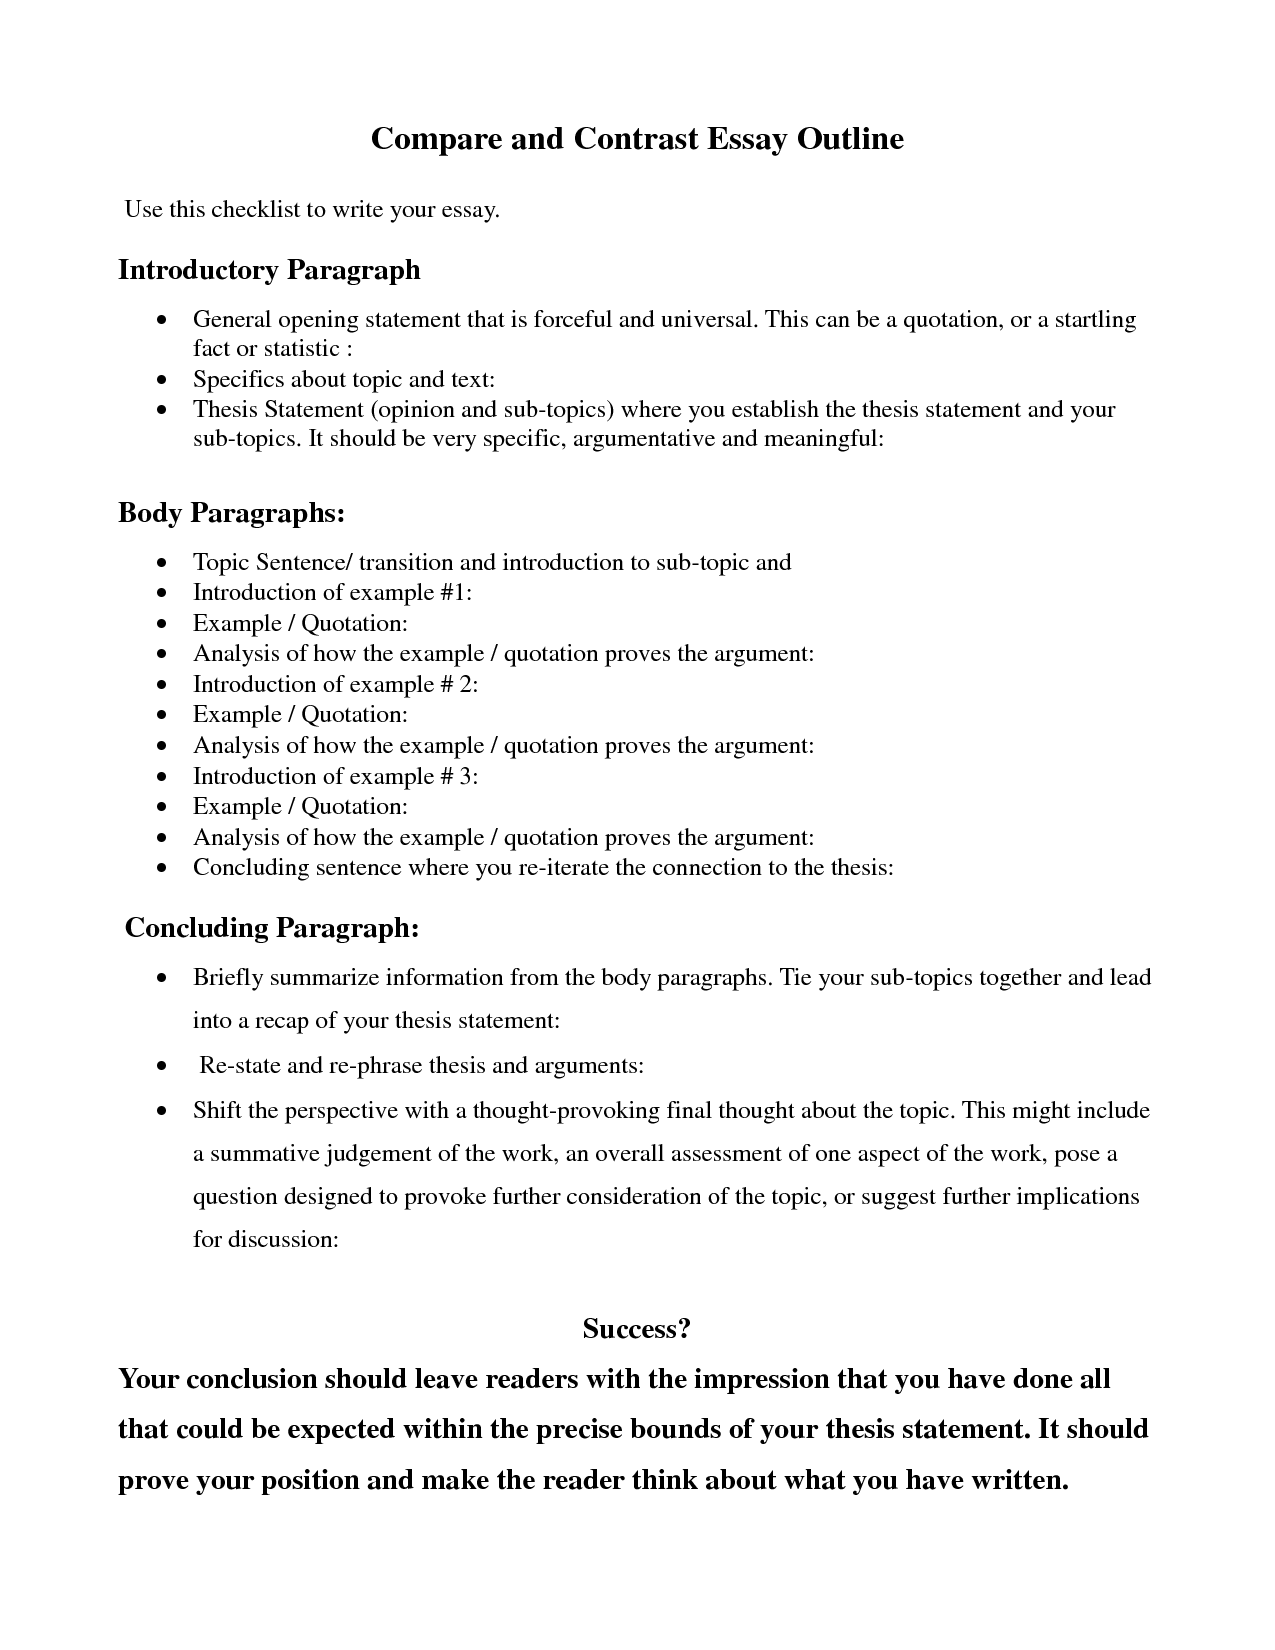 Thesis Examples For Argumentative Essays Comparecontrast Essay Outline  Google Search Best English Essay Topics also Business Management Essay Topics Comparecontrast Essay Outline  Google Search  Education  Thesis  Research Essay Proposal Example